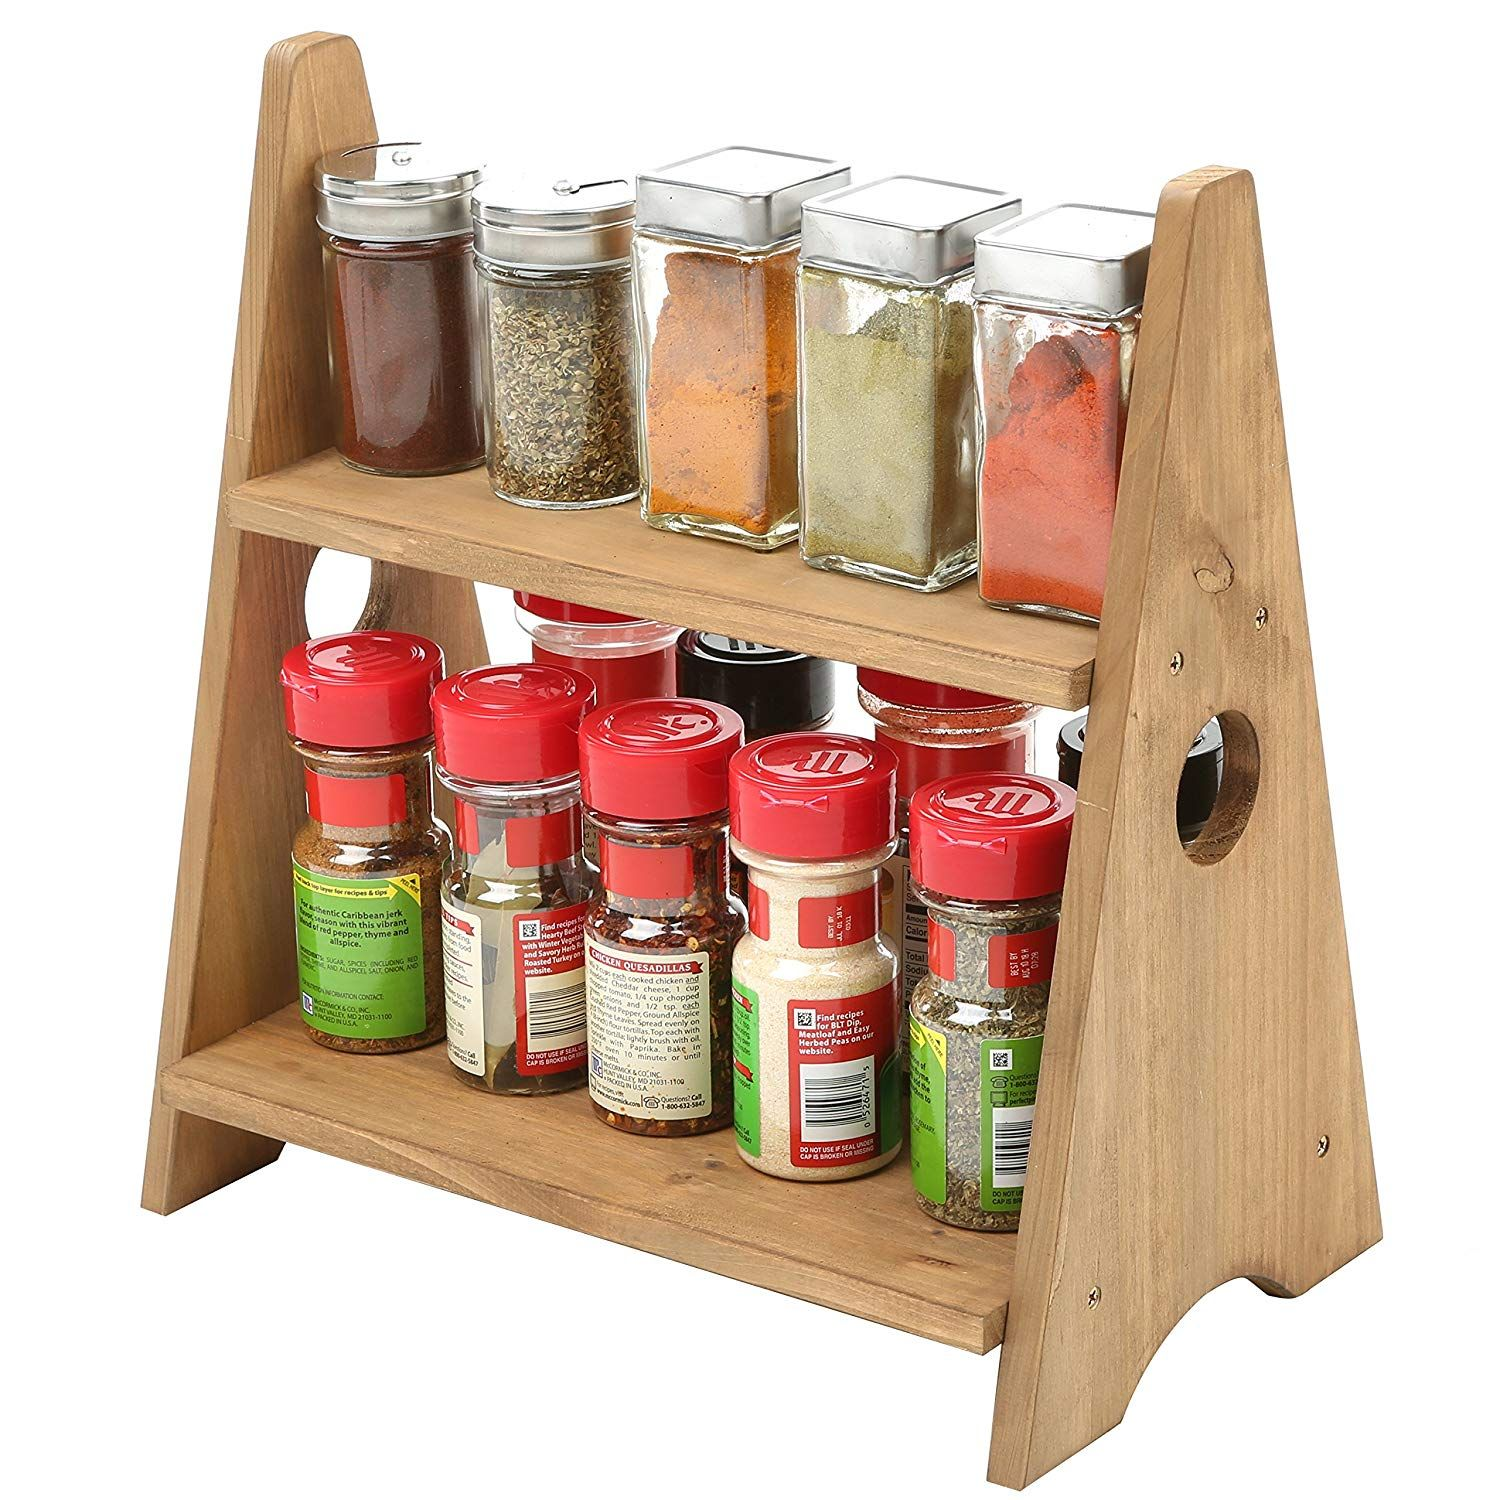 Amazon Com 2 Tier Decorative Multipurpose Desktop Wood Display Shelves Countertop Spice Rack Home Kitch Countertop Spice Rack Wooden Spice Rack Spice Rack